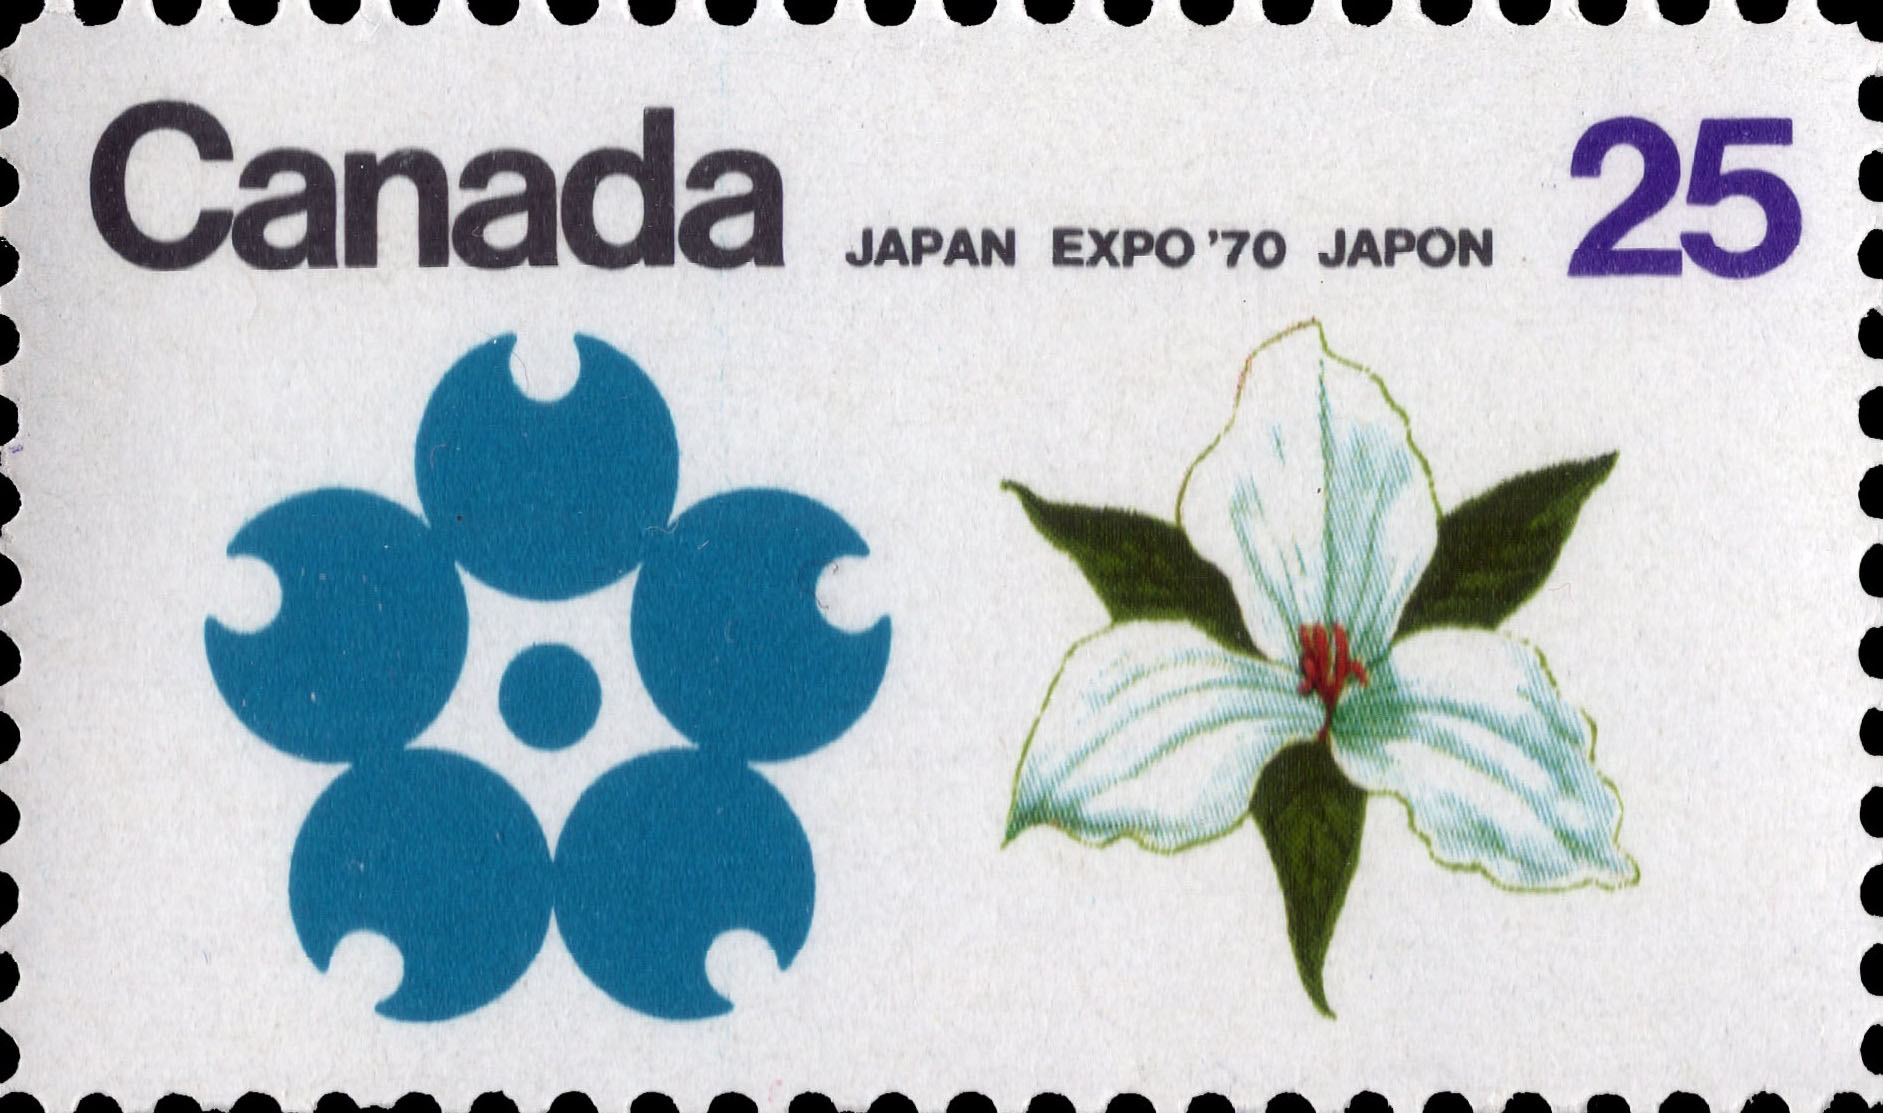 Ontario Canada Postage Stamp